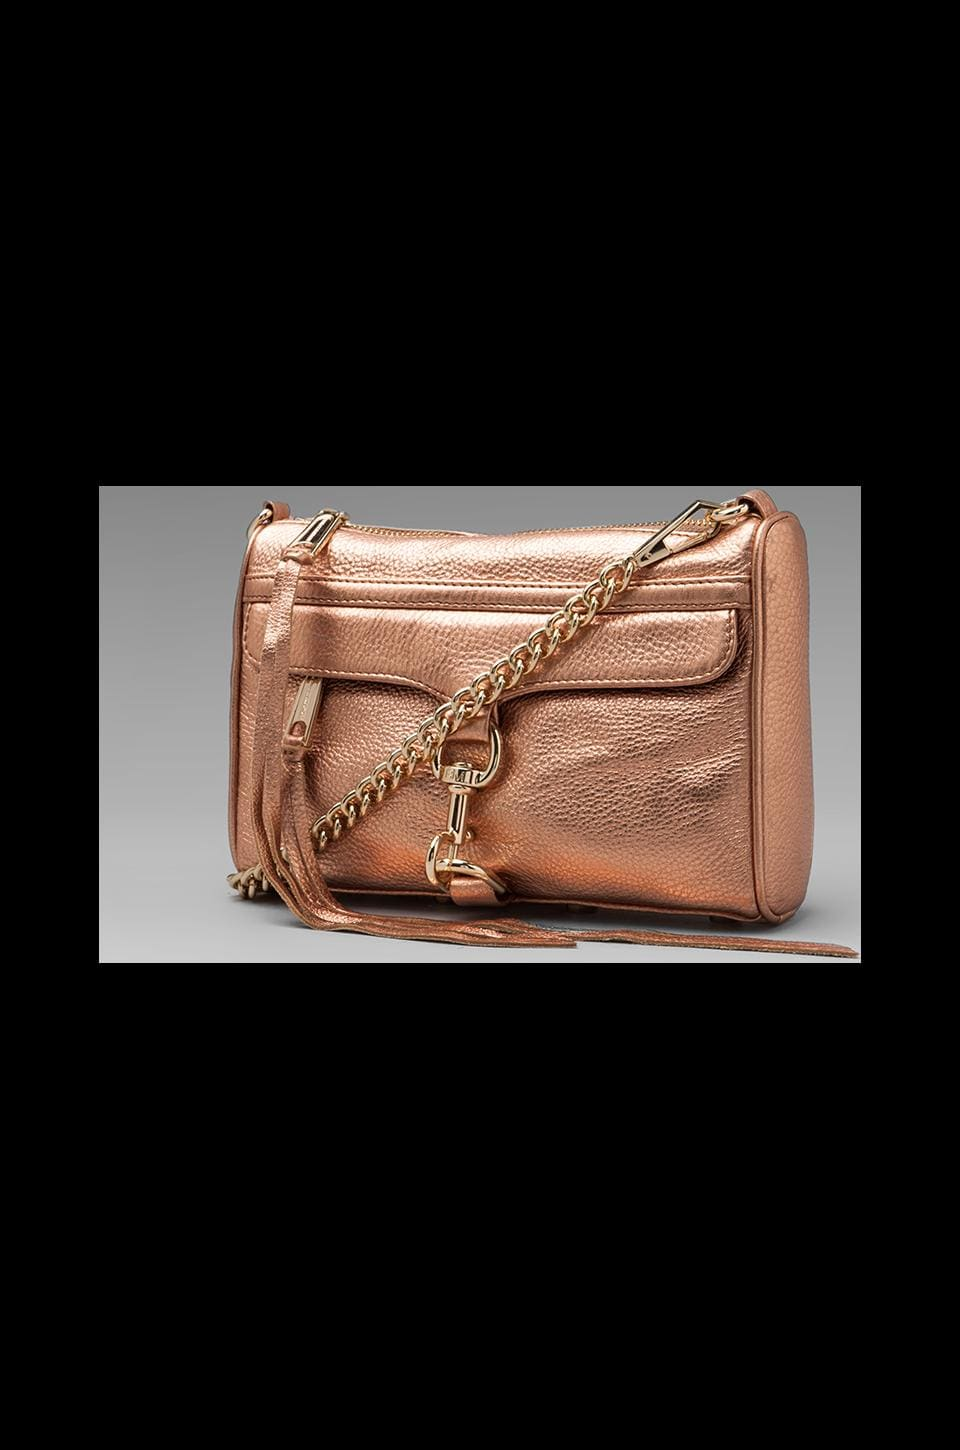 Rebecca Minkoff Mini MAC Clutch in Rose Gold